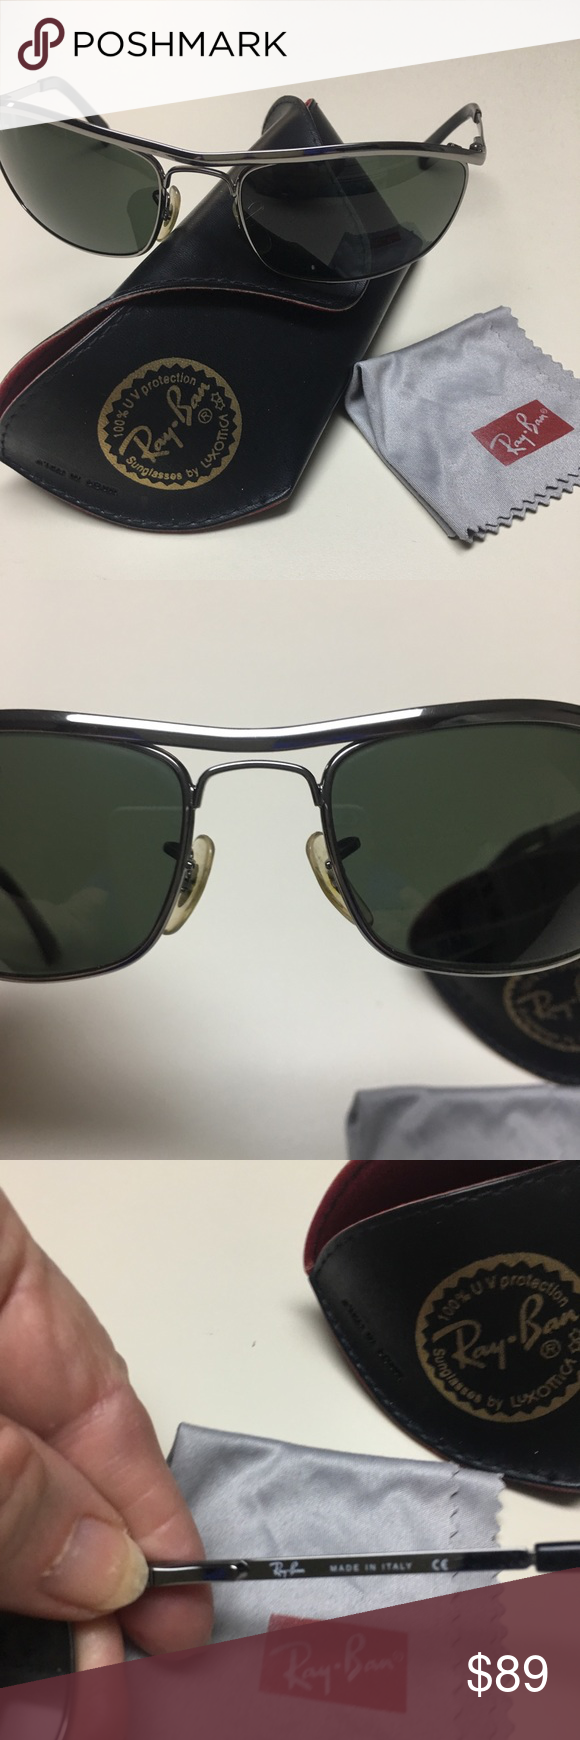 c0b84dabc58 RAY BAN SUNGLASSES WITH CASE CLEANING CLOTH RAY BAN SUNGLASSES WITH CASE.  IN EXCELLENT